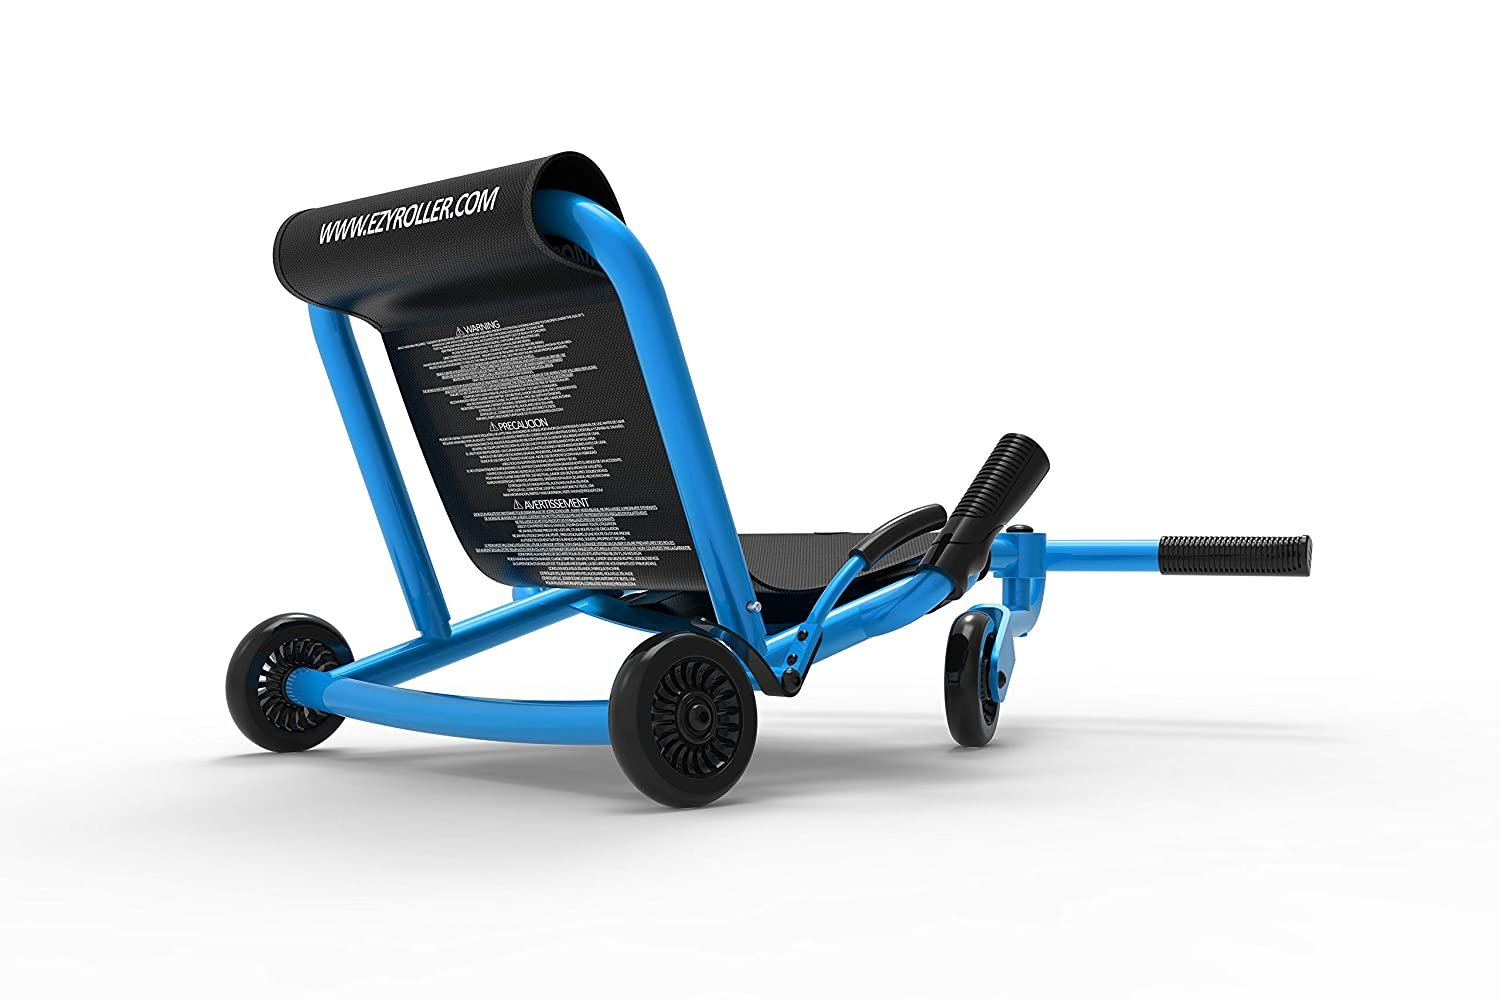 Amazon.com: EzyRoller Ride On Toy - Patinete clásico, Azul ...